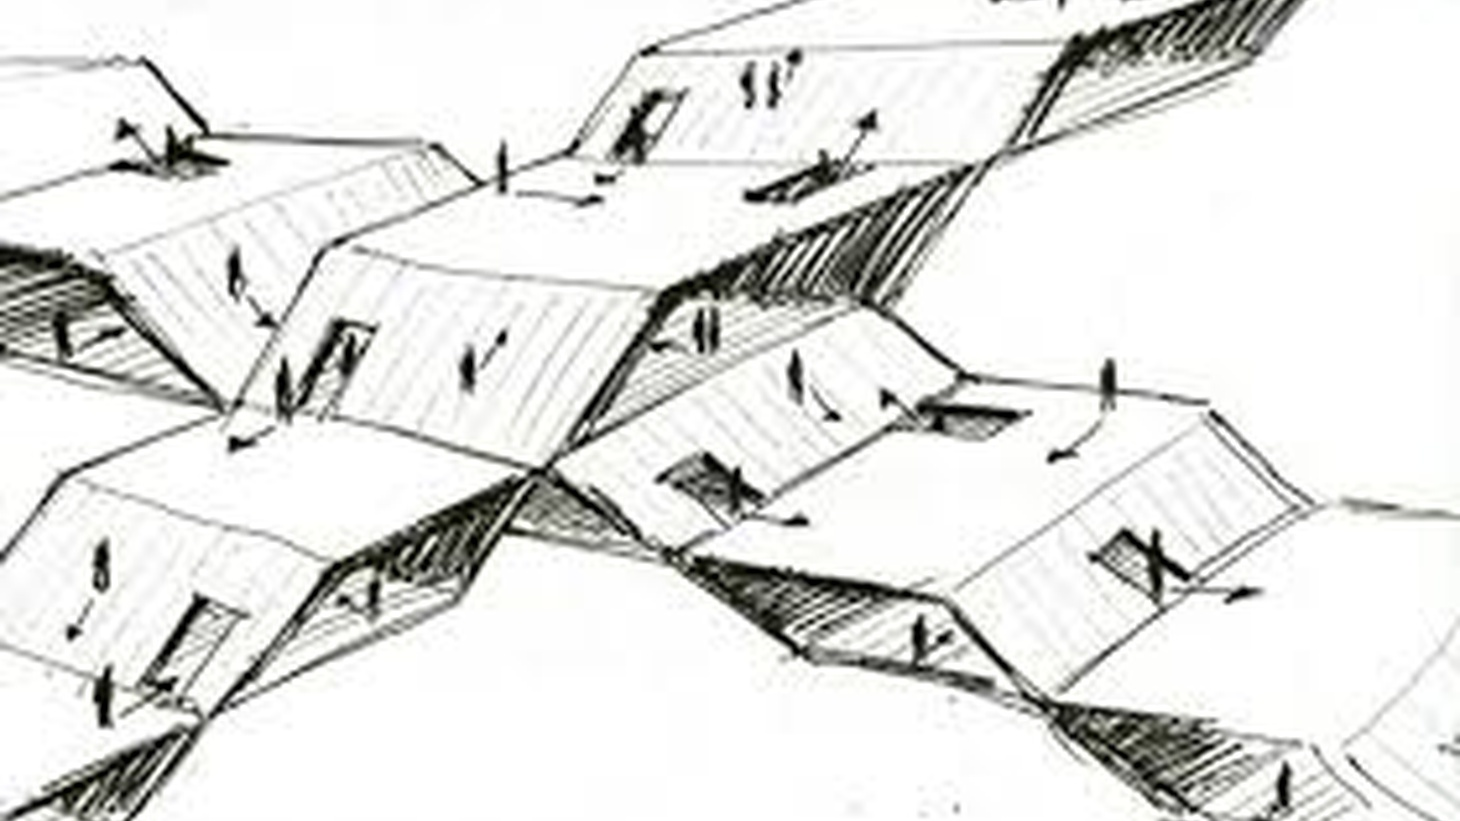 A sketch illustrating The Oblique Function by French Architect Claude Parent